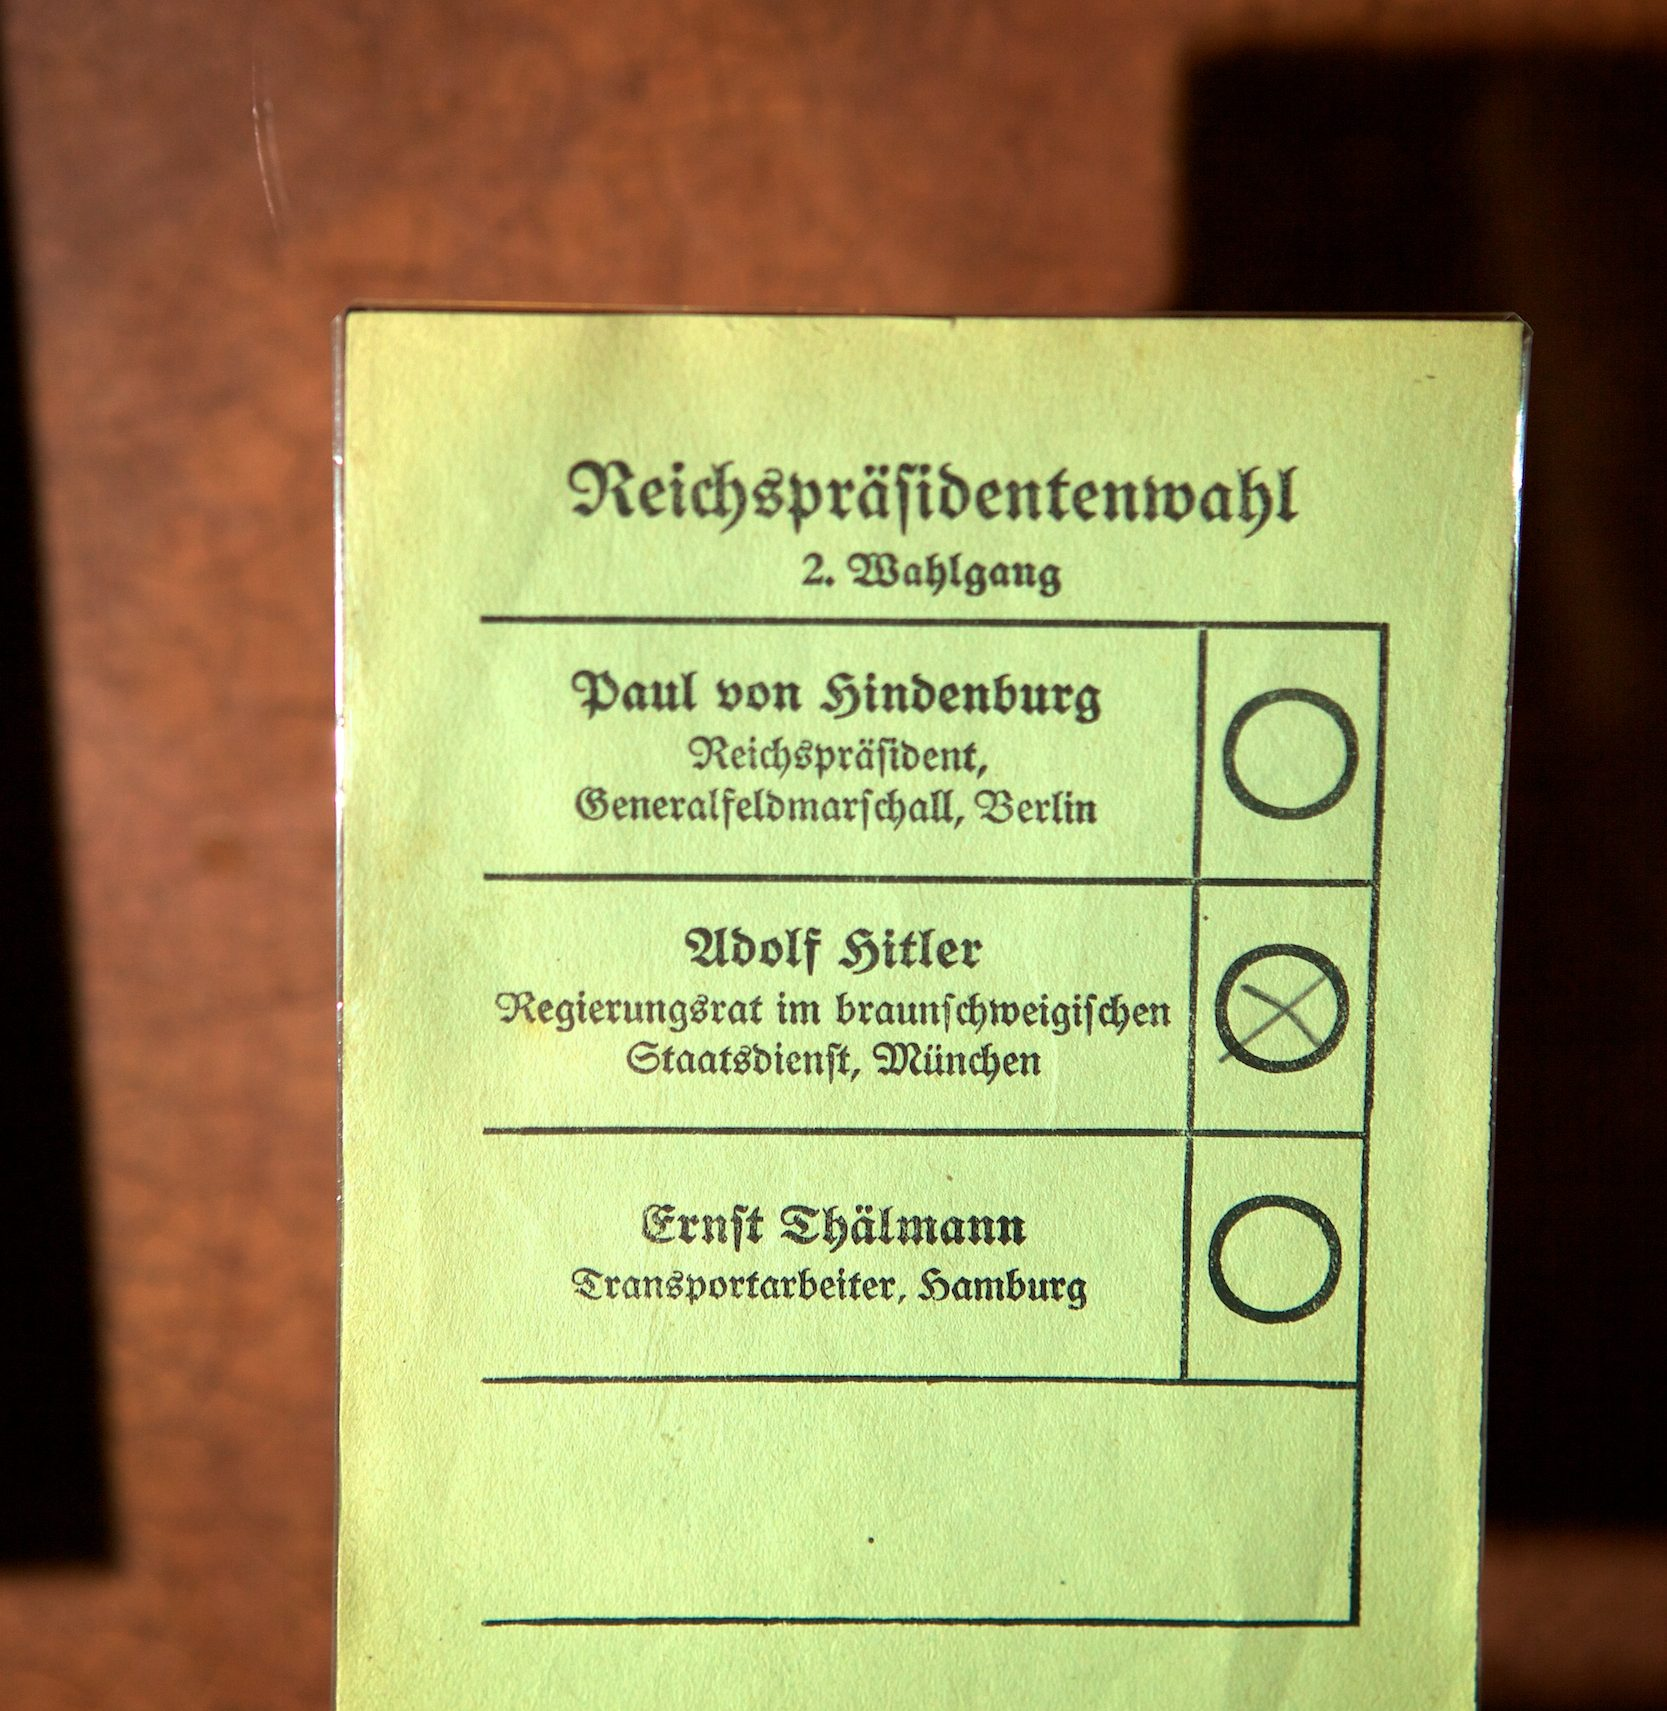 Voting ballot for the 1932 presidential election. Germany, 1932.